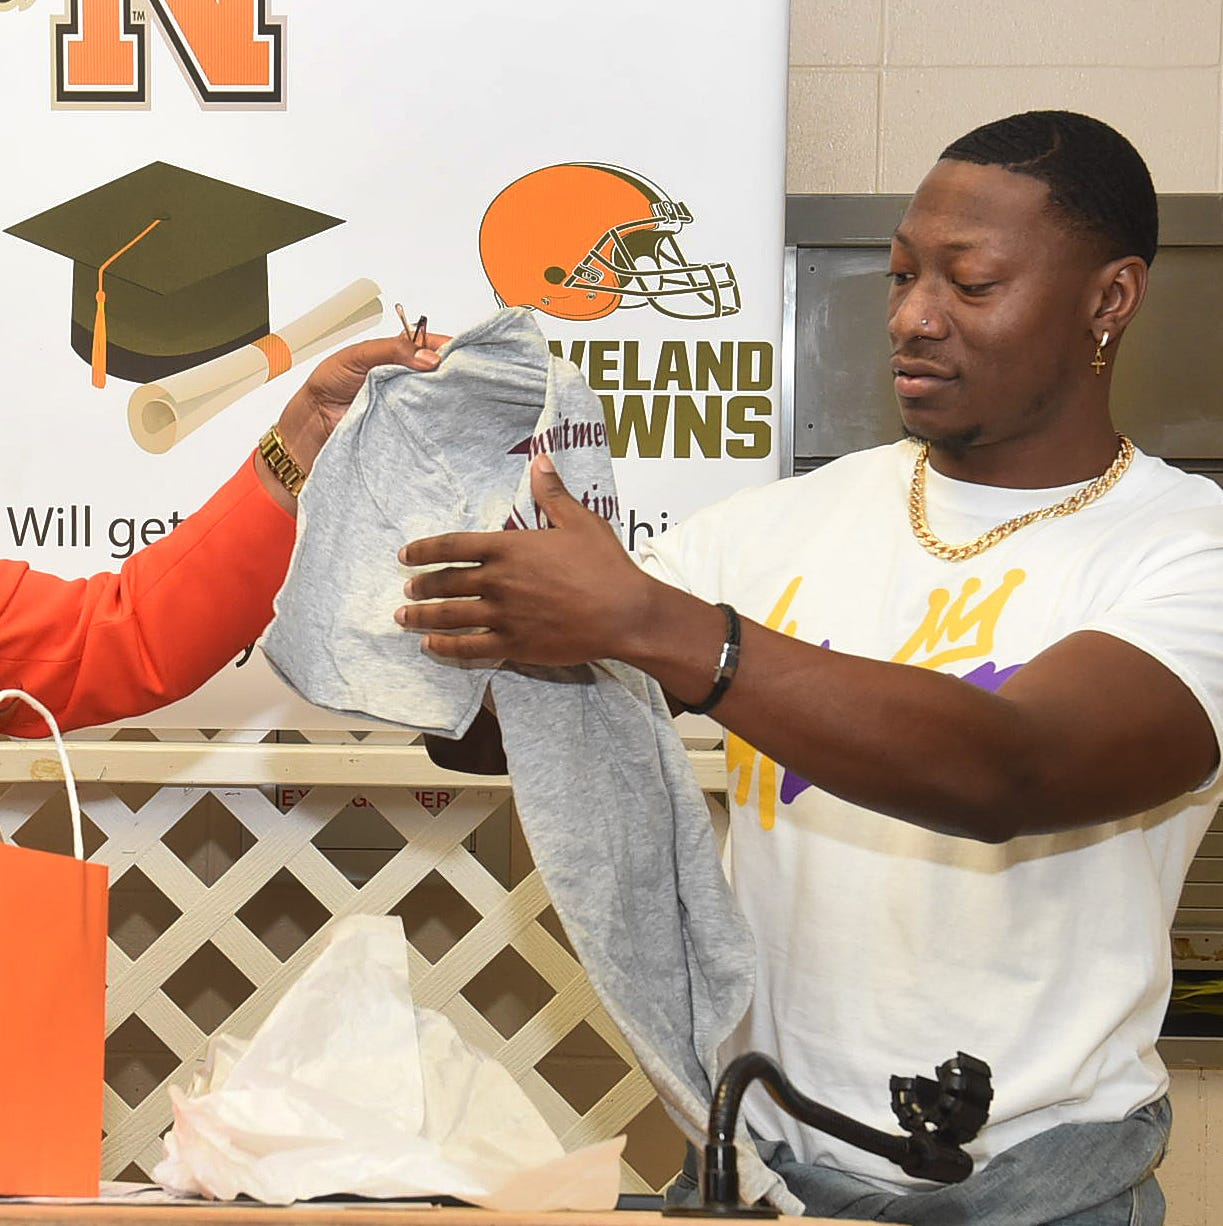 OHS alum, now with NFL, advises students on role models, staying out of trouble